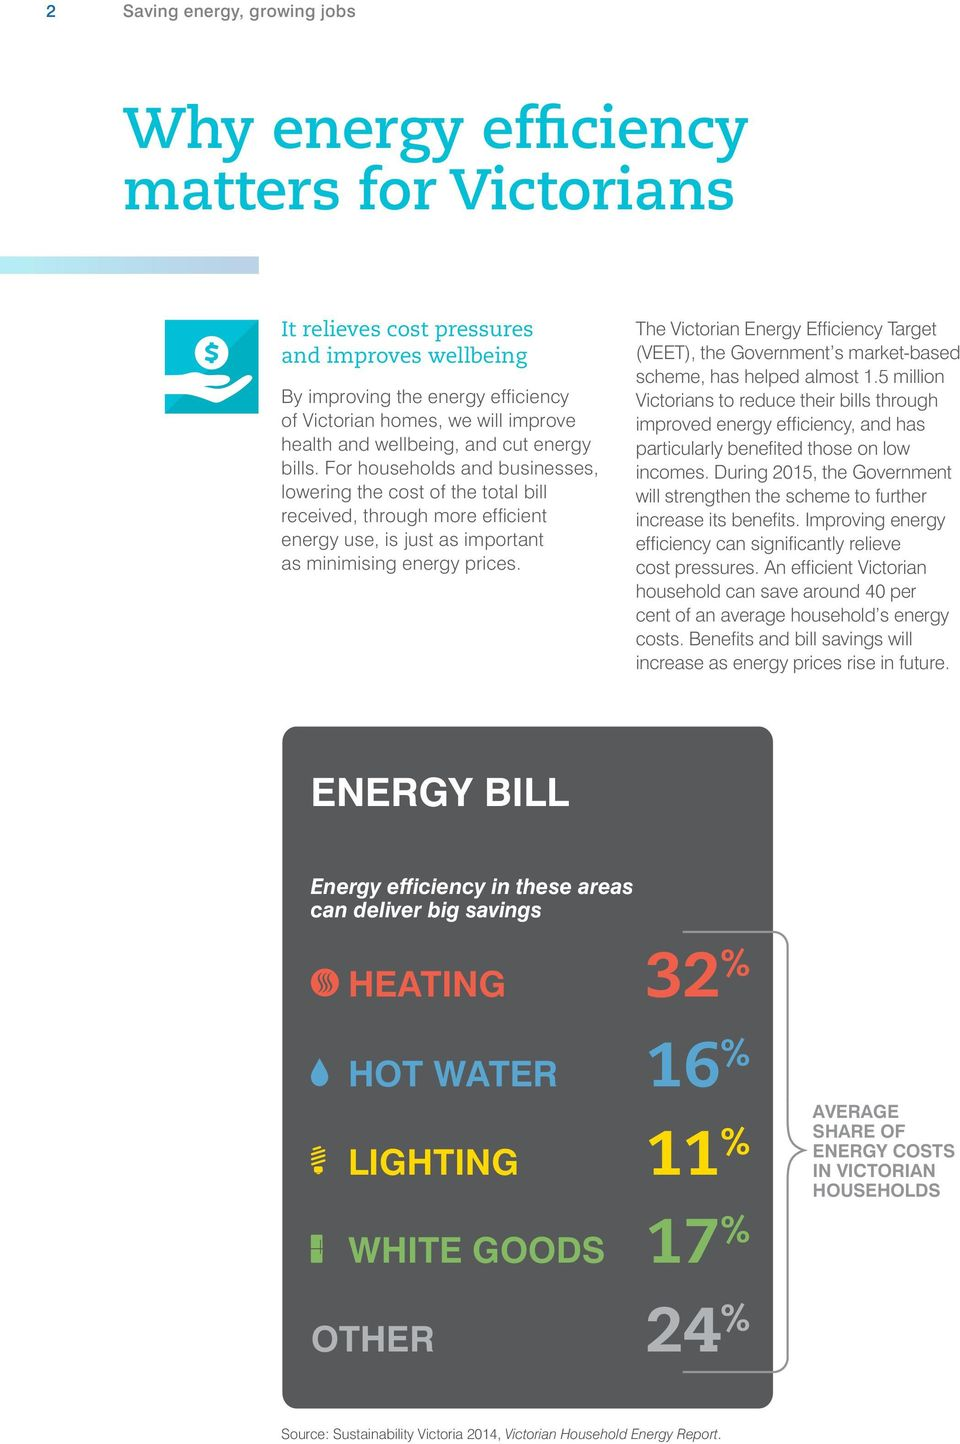 For households and businesses, lowering the cost of the total bill received, through more efficient energy use, is just as important as minimising energy prices.